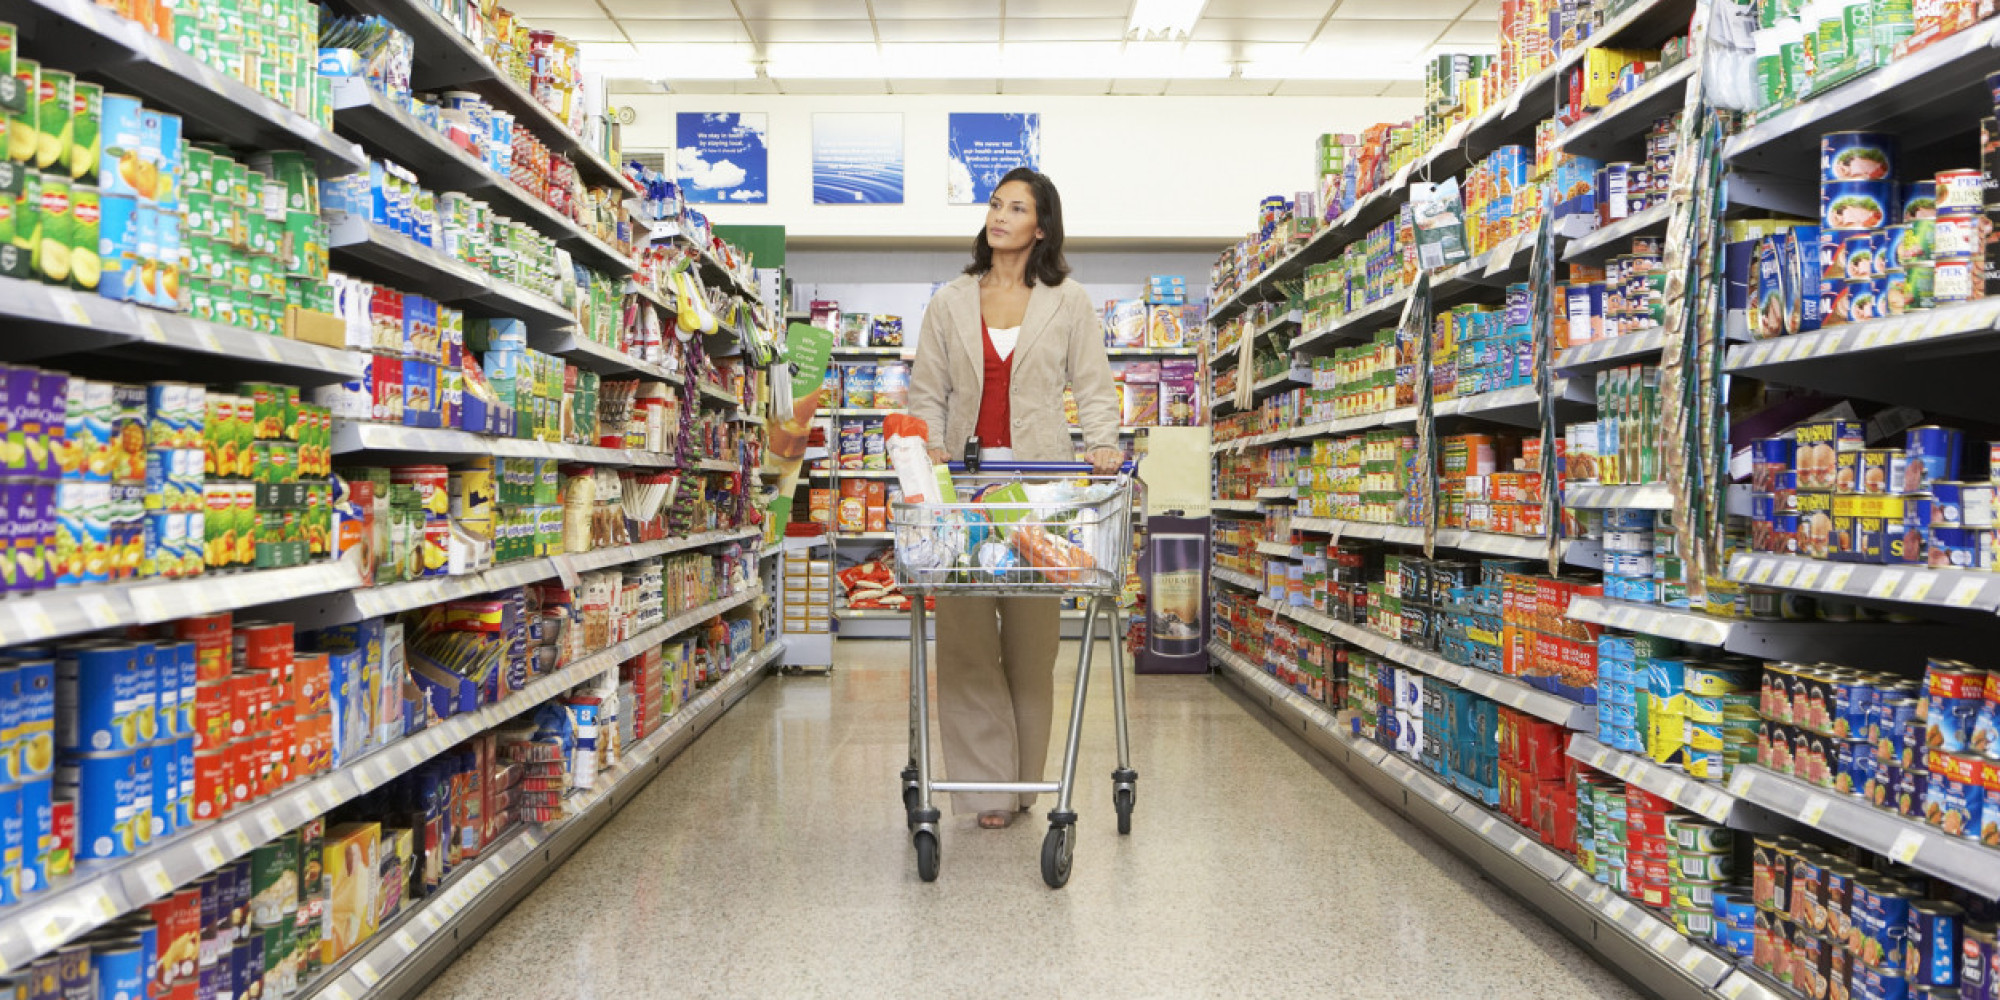 Woman shopping in supermarket, pushing trolley in aisle